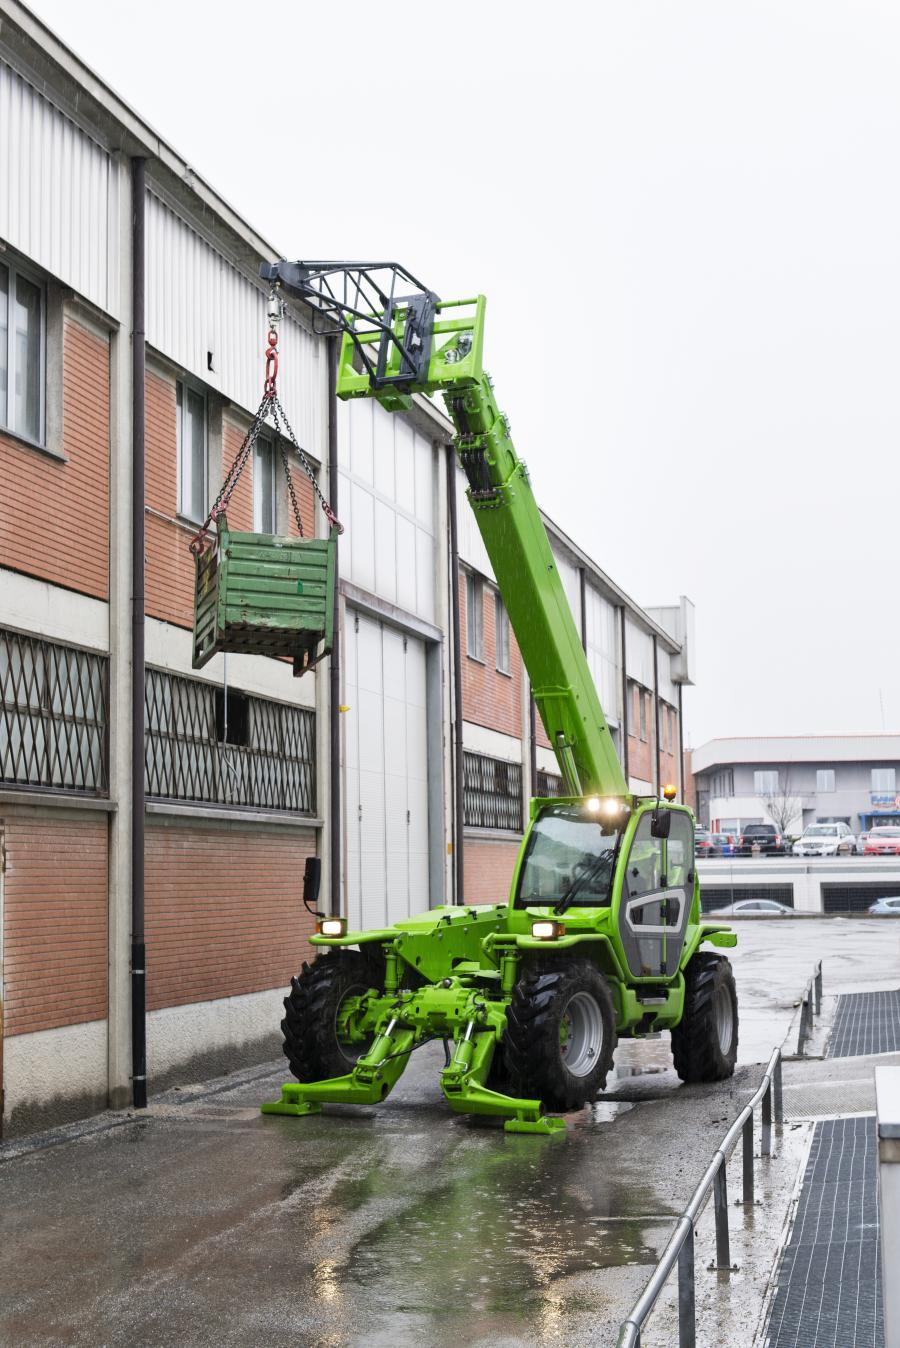 Lighter in mass than similar machines (unladed weight is 29,300 lbs. [13,290 kg]) the P50.18Plus offers high ground clearance, hydrostatic transmission, 100HP Deutz engine, and the Merlo Tac-lock system for simplified attachment change out.